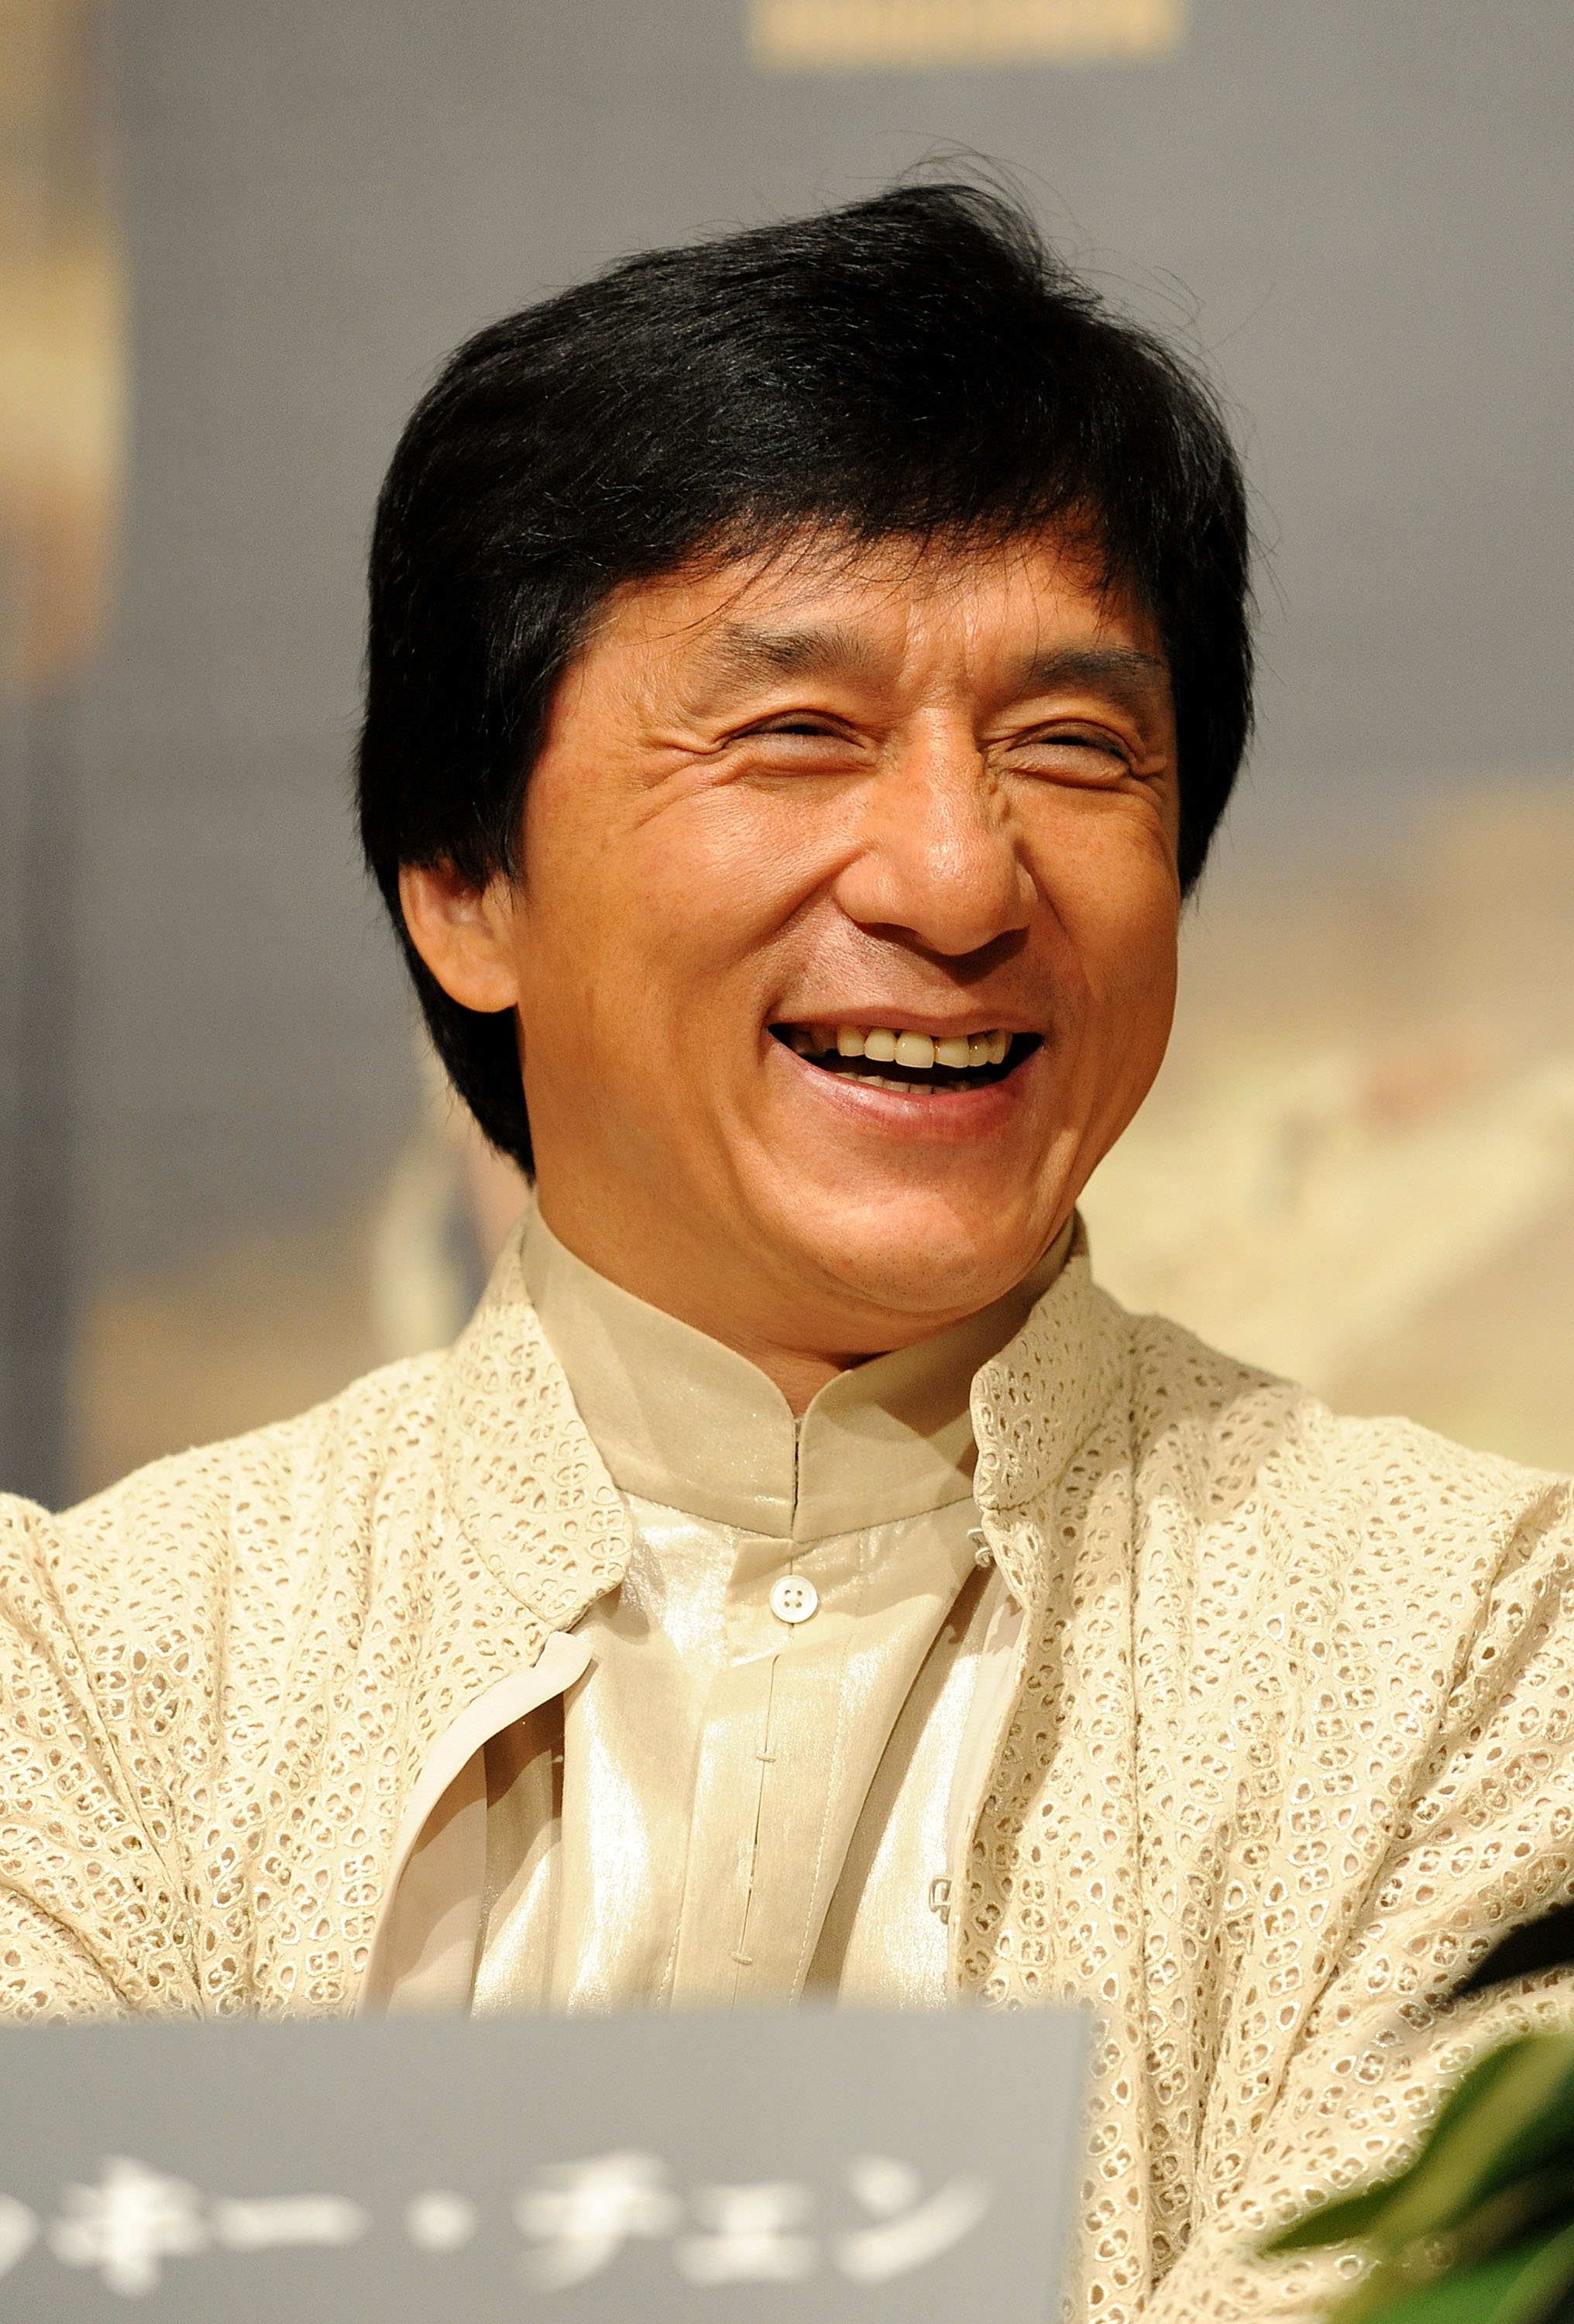 Spokesman: Jackie Chan Comments Out Of Context | Access Online